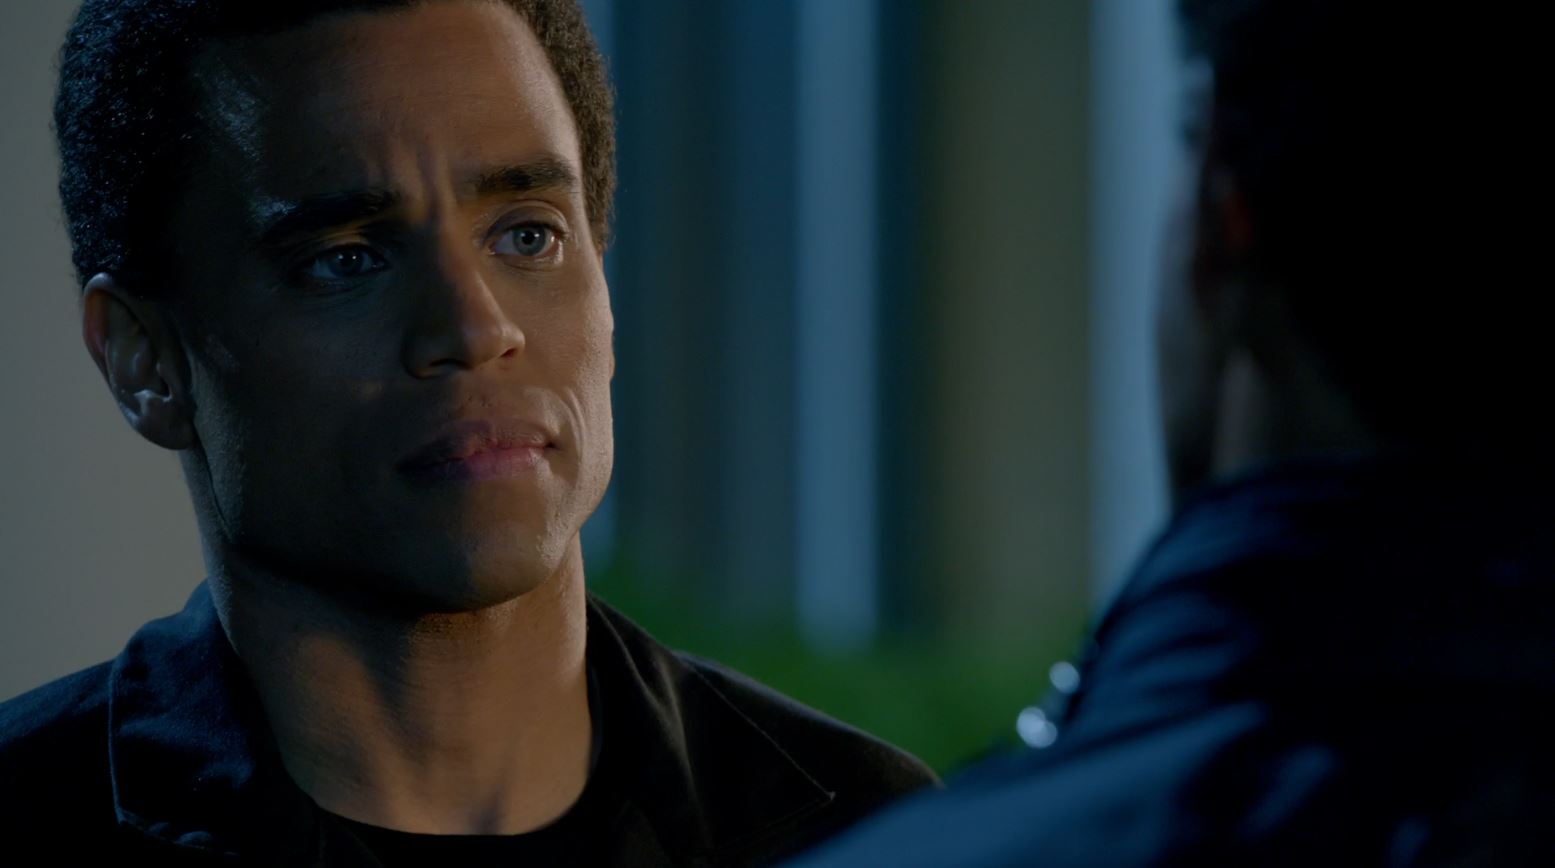 Michael Ealy as Dorian - Almost Human - Arrhythmia